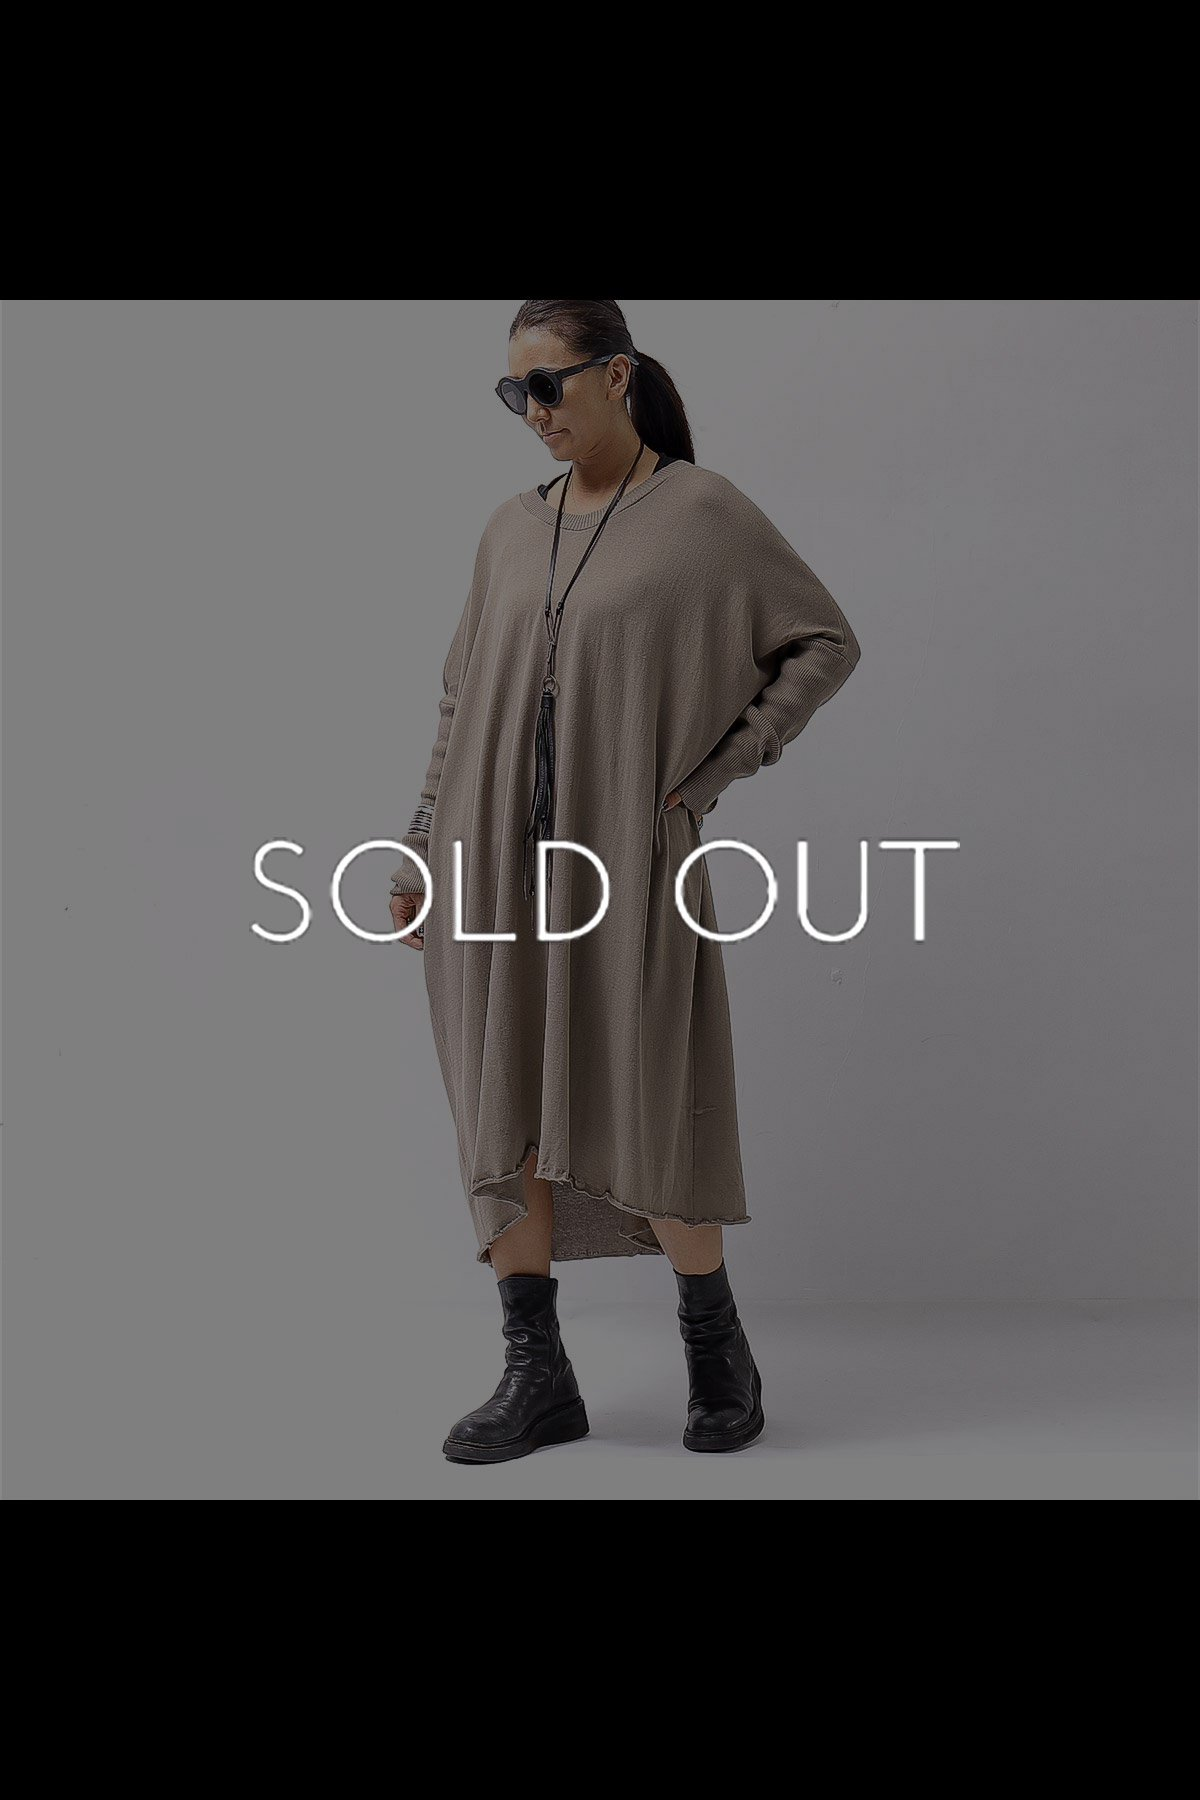 <img class='new_mark_img1' src='https://img.shop-pro.jp/img/new/icons8.gif' style='border:none;display:inline;margin:0px;padding:0px;width:auto;' />COTTONE KNIT DRESS VB1169_DEEP BEIGE